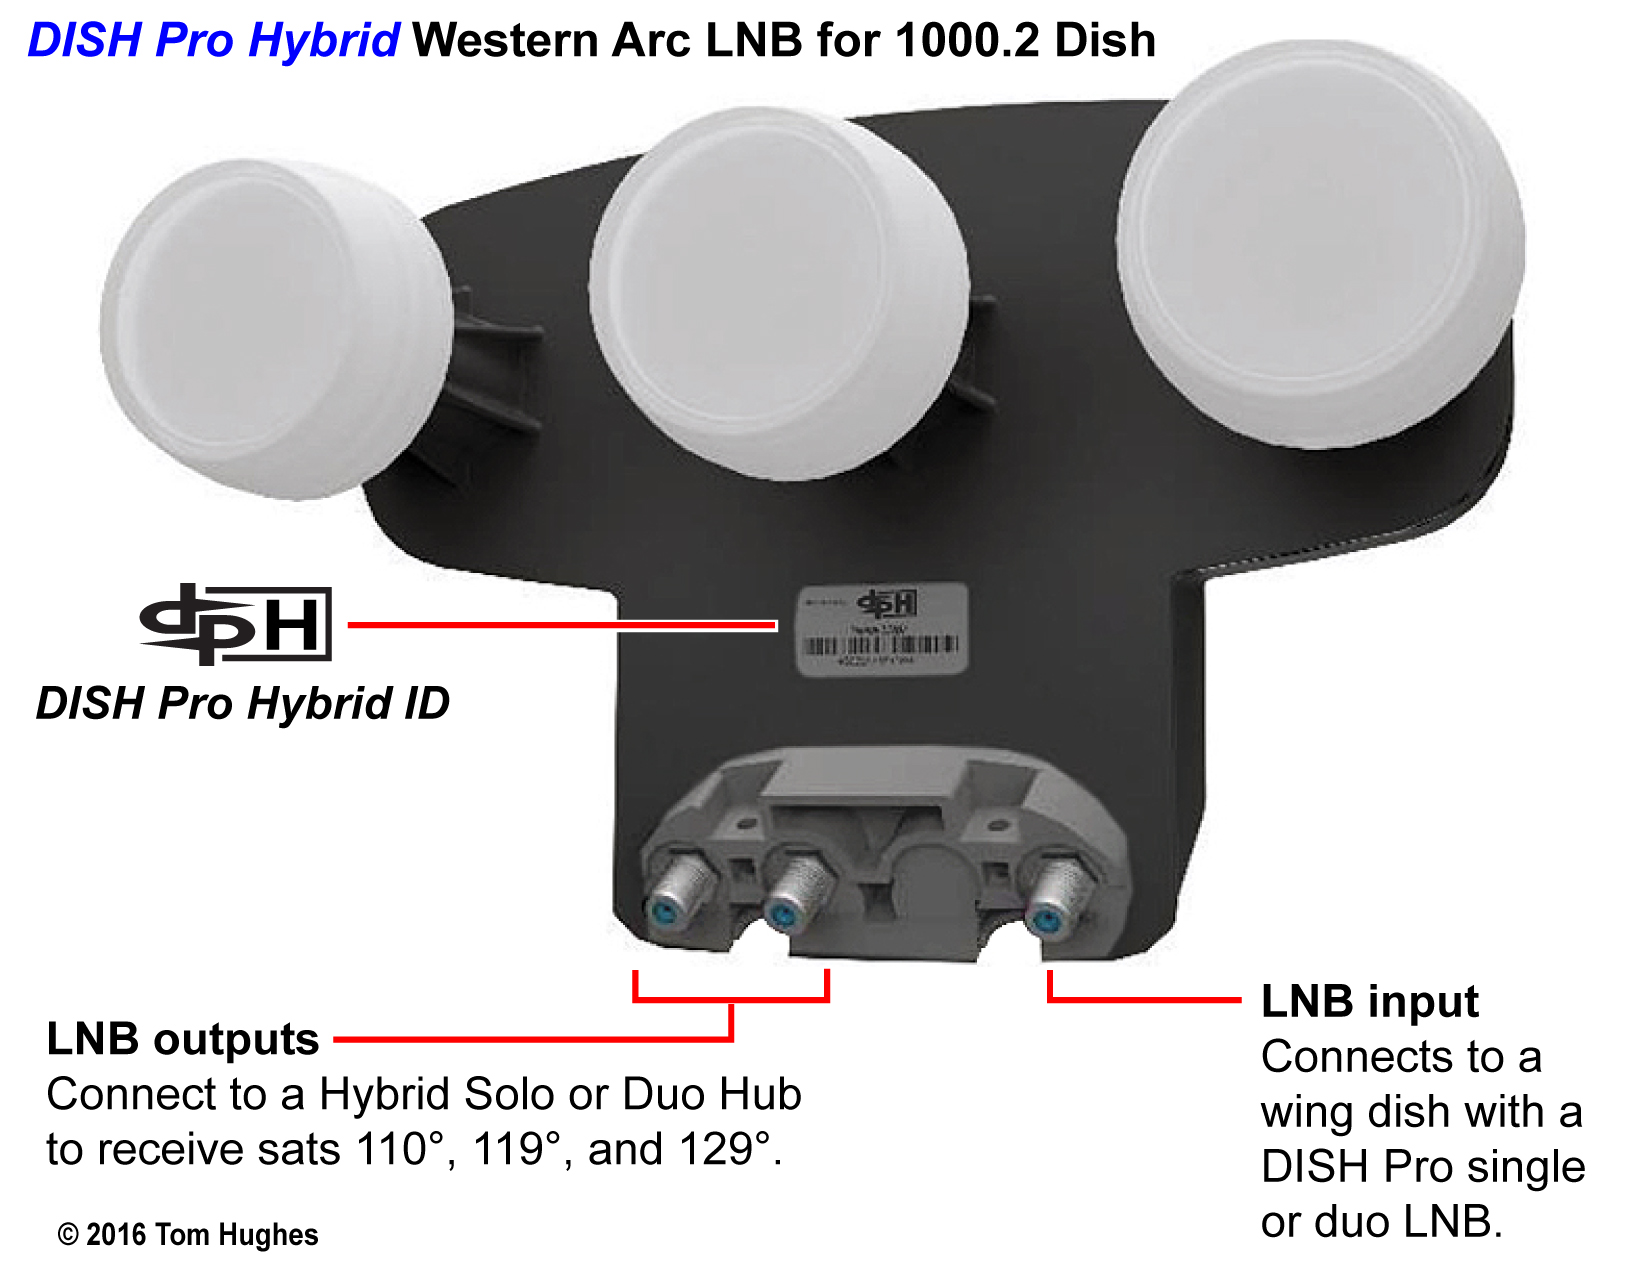 hybrid_lnb_install_08?w=620 dish pro hybrid winegard travler upgrade (no longer recommended dish pro plus wiring diagram at aneh.co